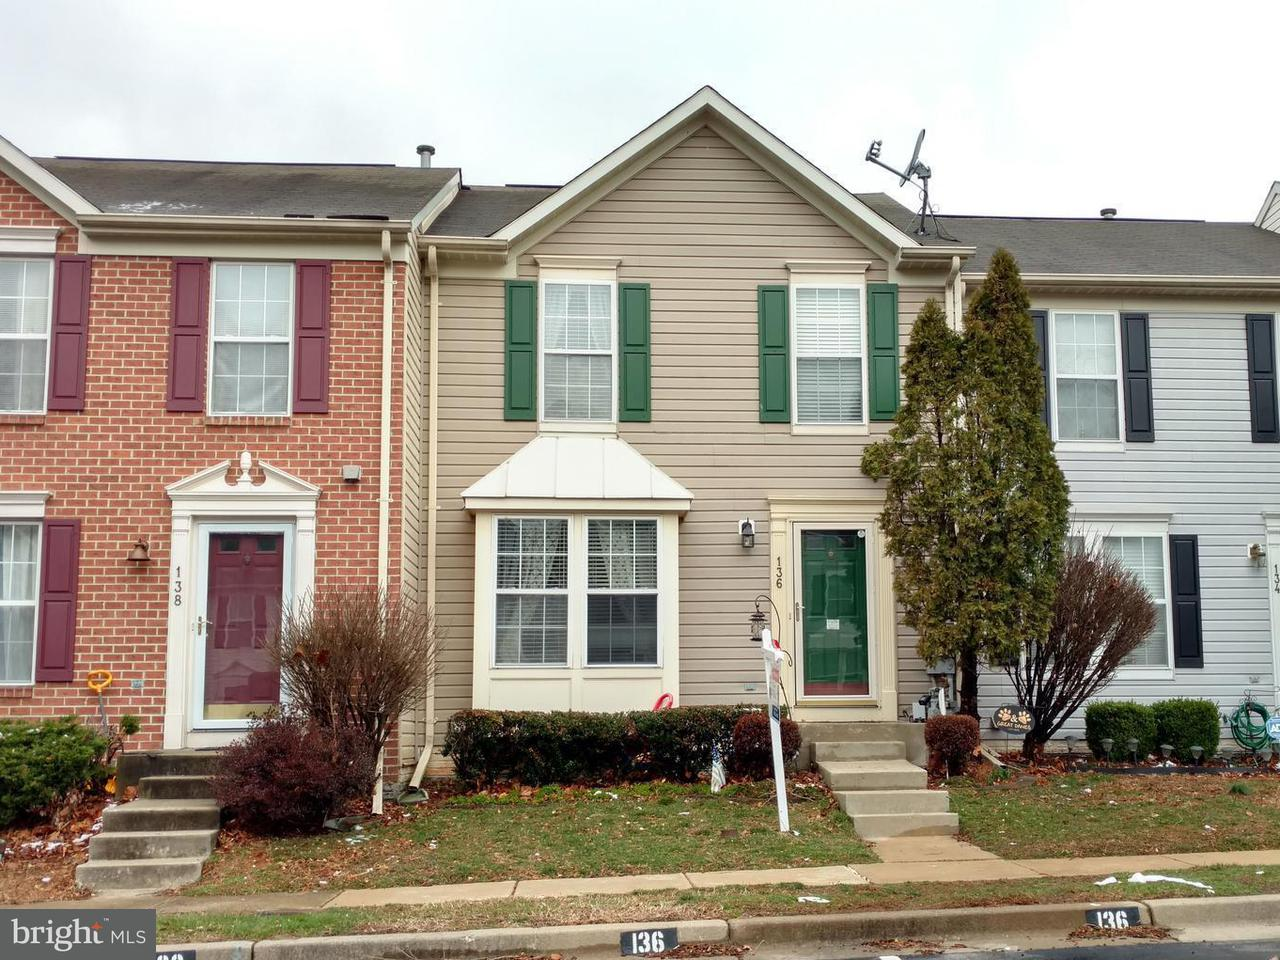 136  Foxtree Glen Burnie, MD 21061